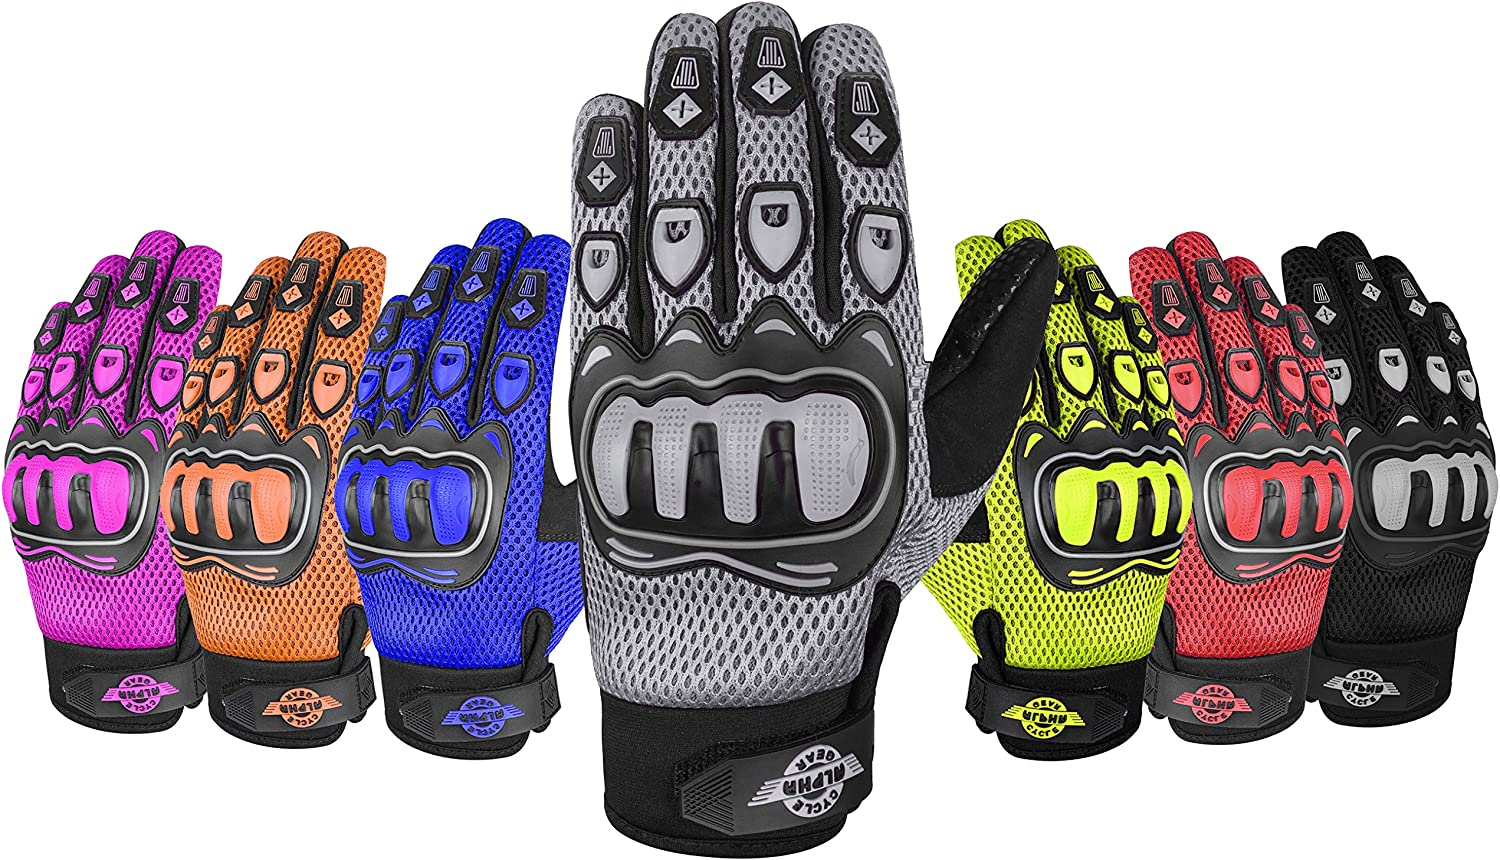 ALPHA CYCLE GEAR MOTO SPORTS GLOVES Challenge the Arlington Mall lowest price GRAY BLACK SMALL